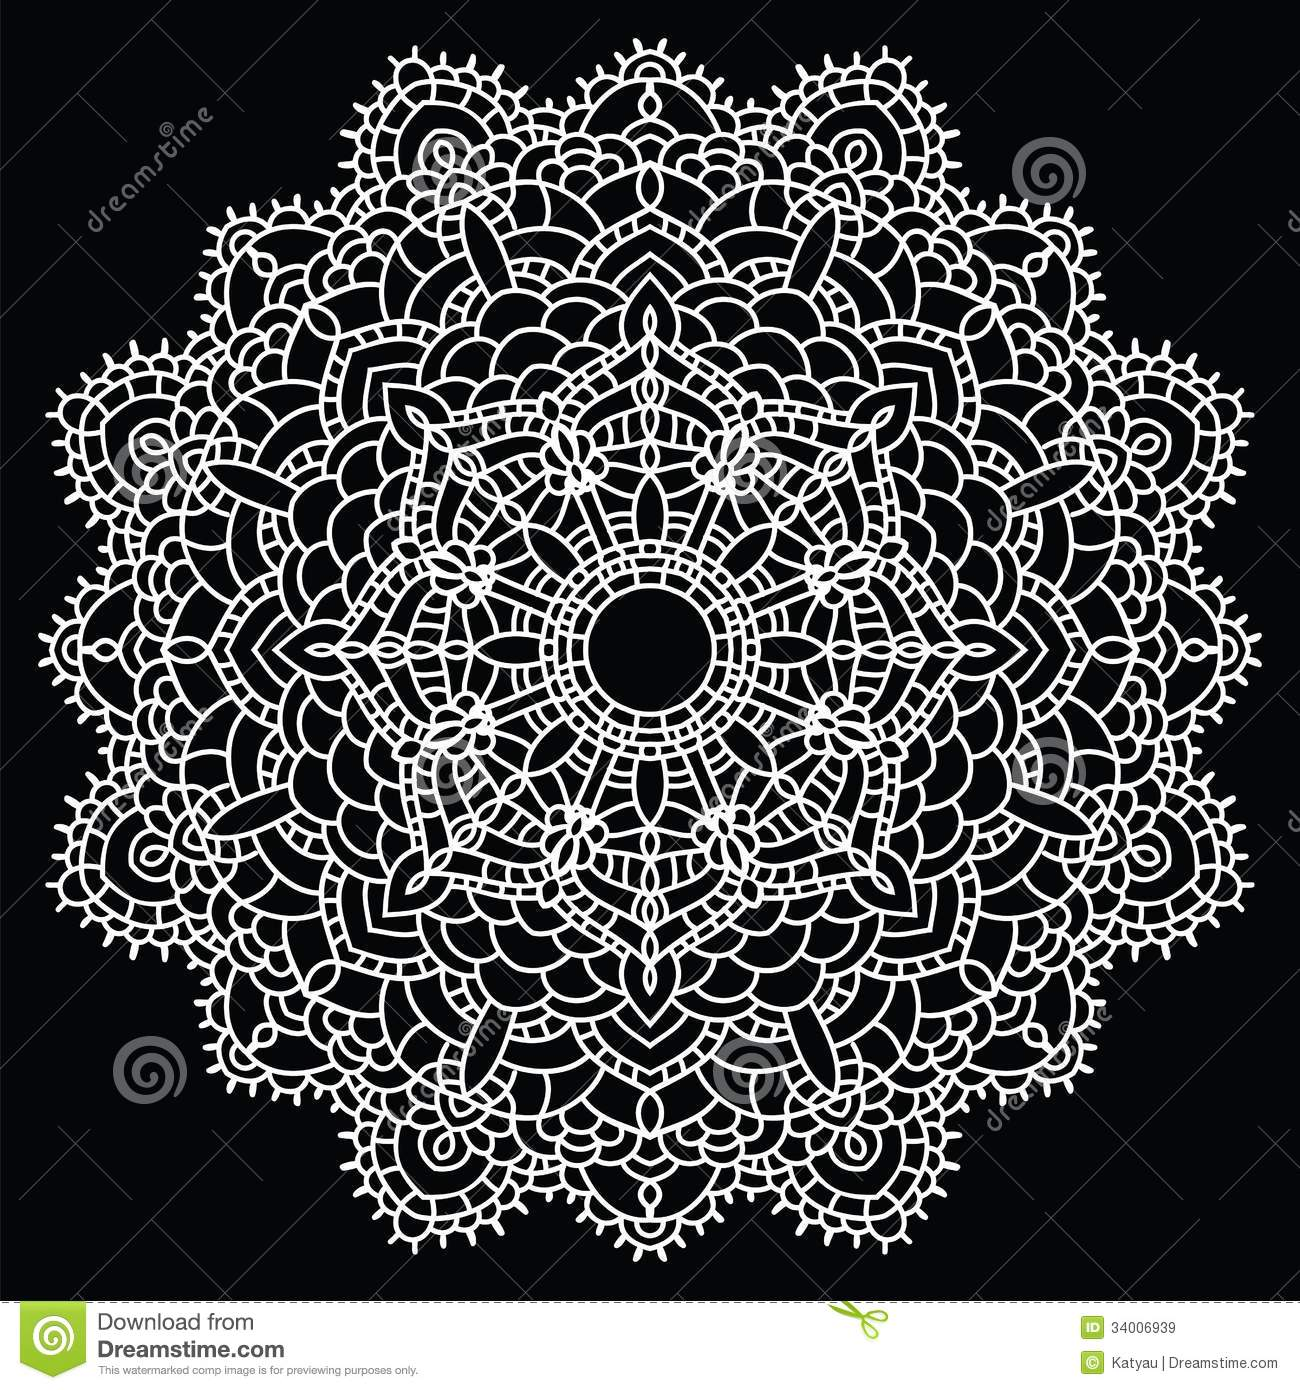 ... handmade knitted doily. Round lace pattern. Vector illustration